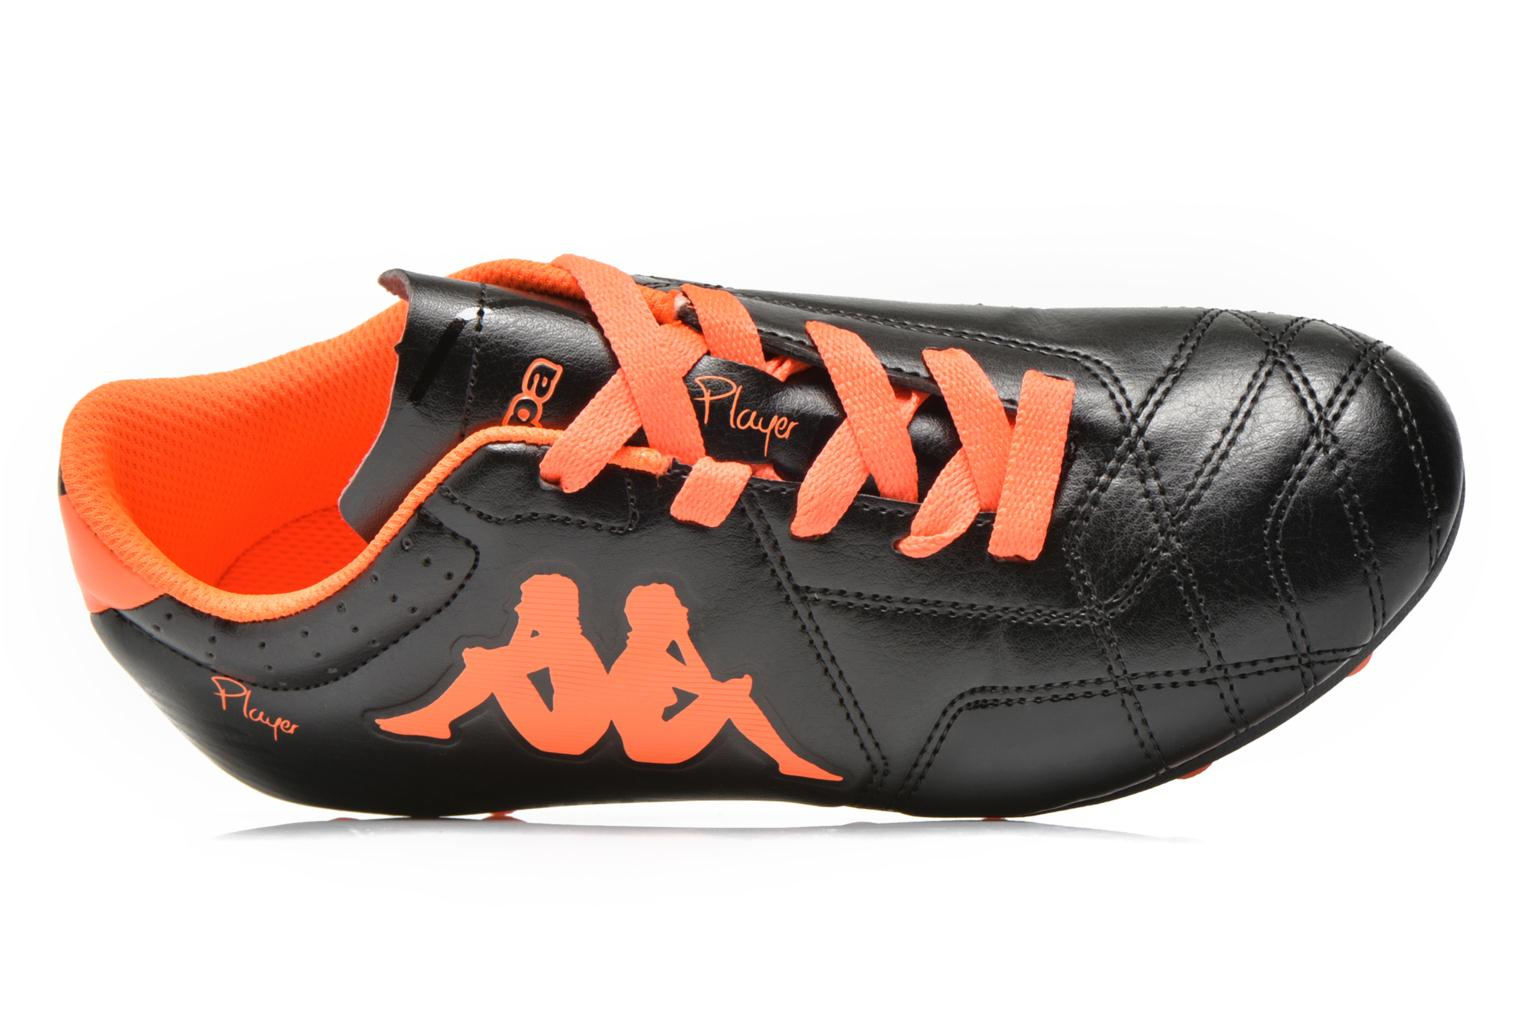 Player Fg BLACK ORANGE FLUO